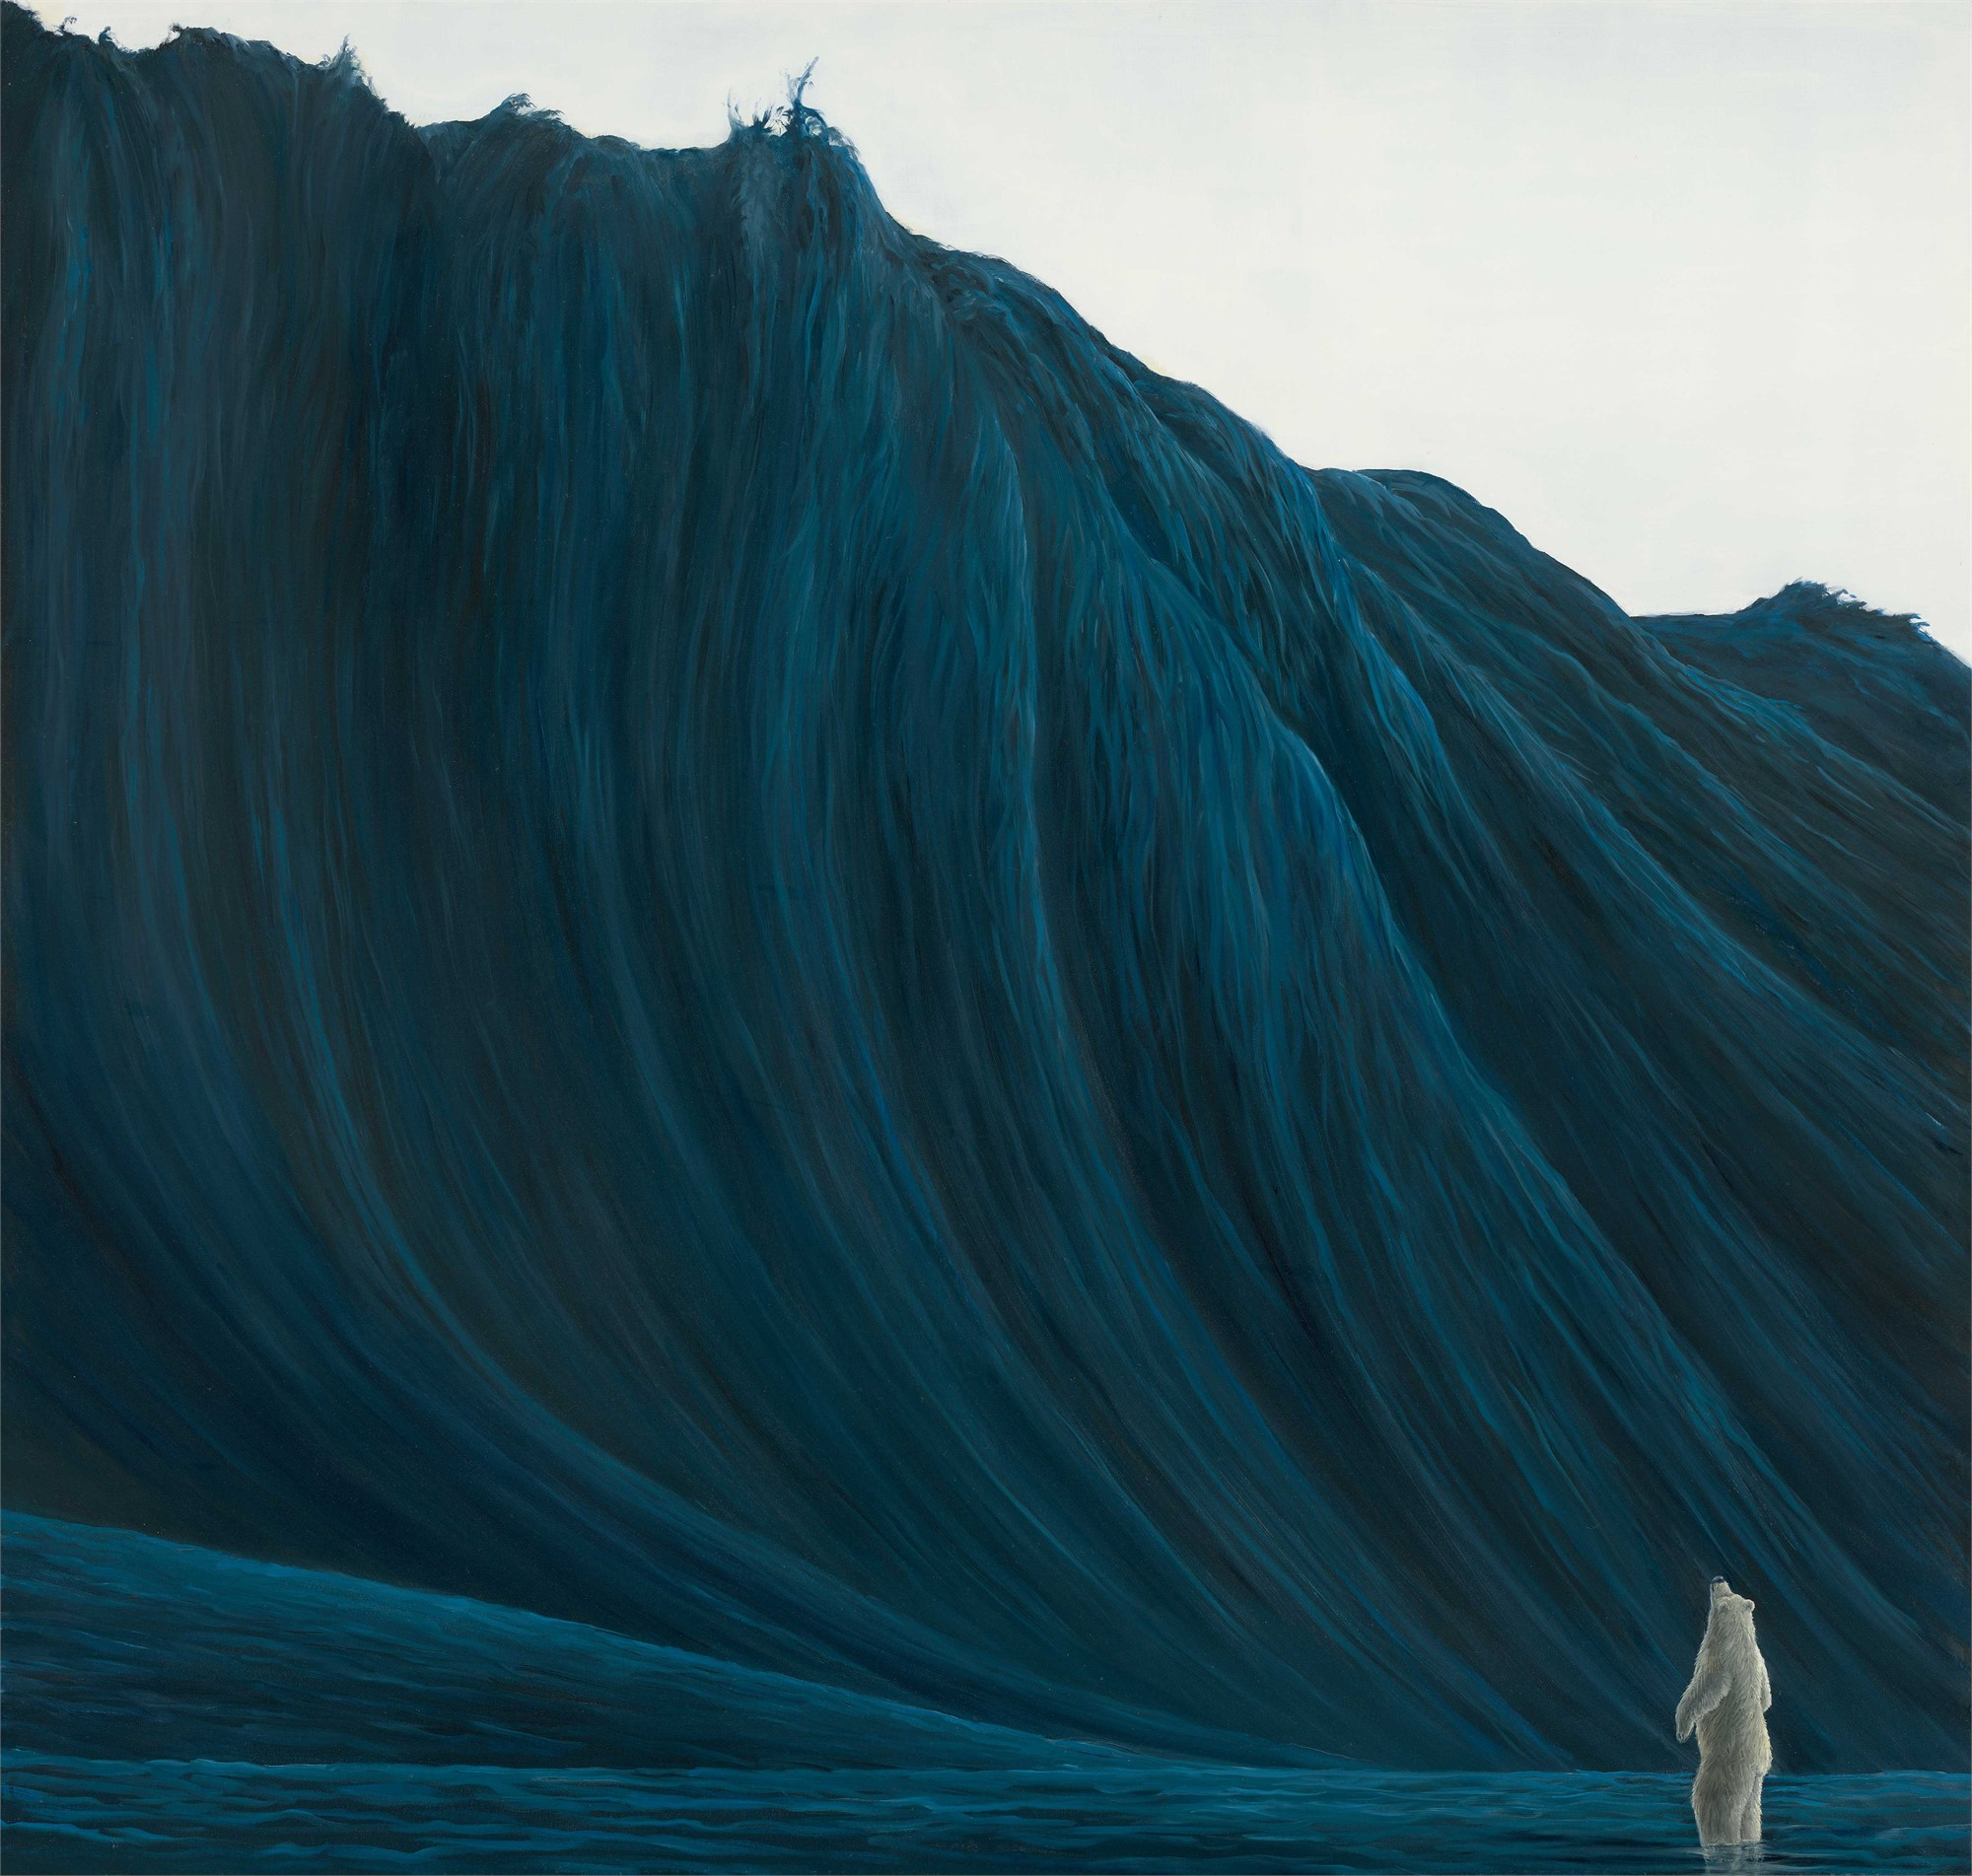 The Mountain by Robert Bissell